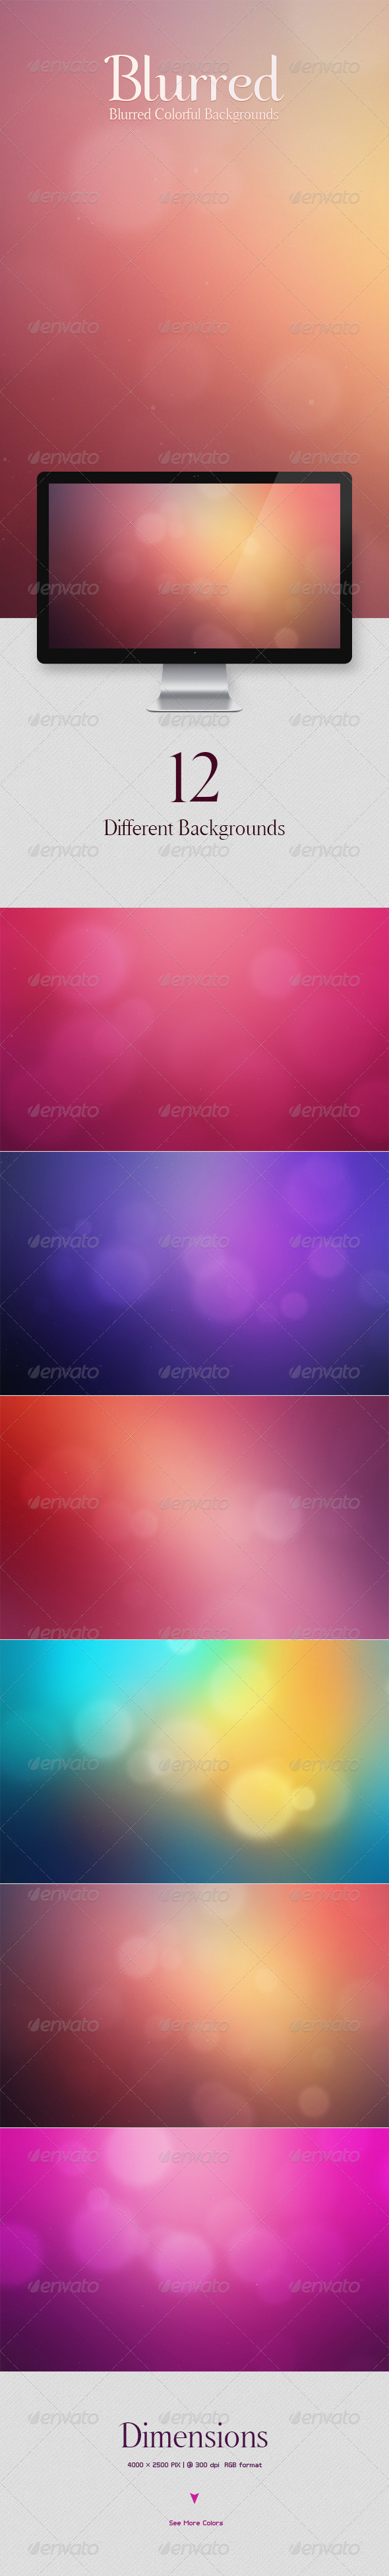 Blurred Colorful Backgrounds - Abstract Backgrounds